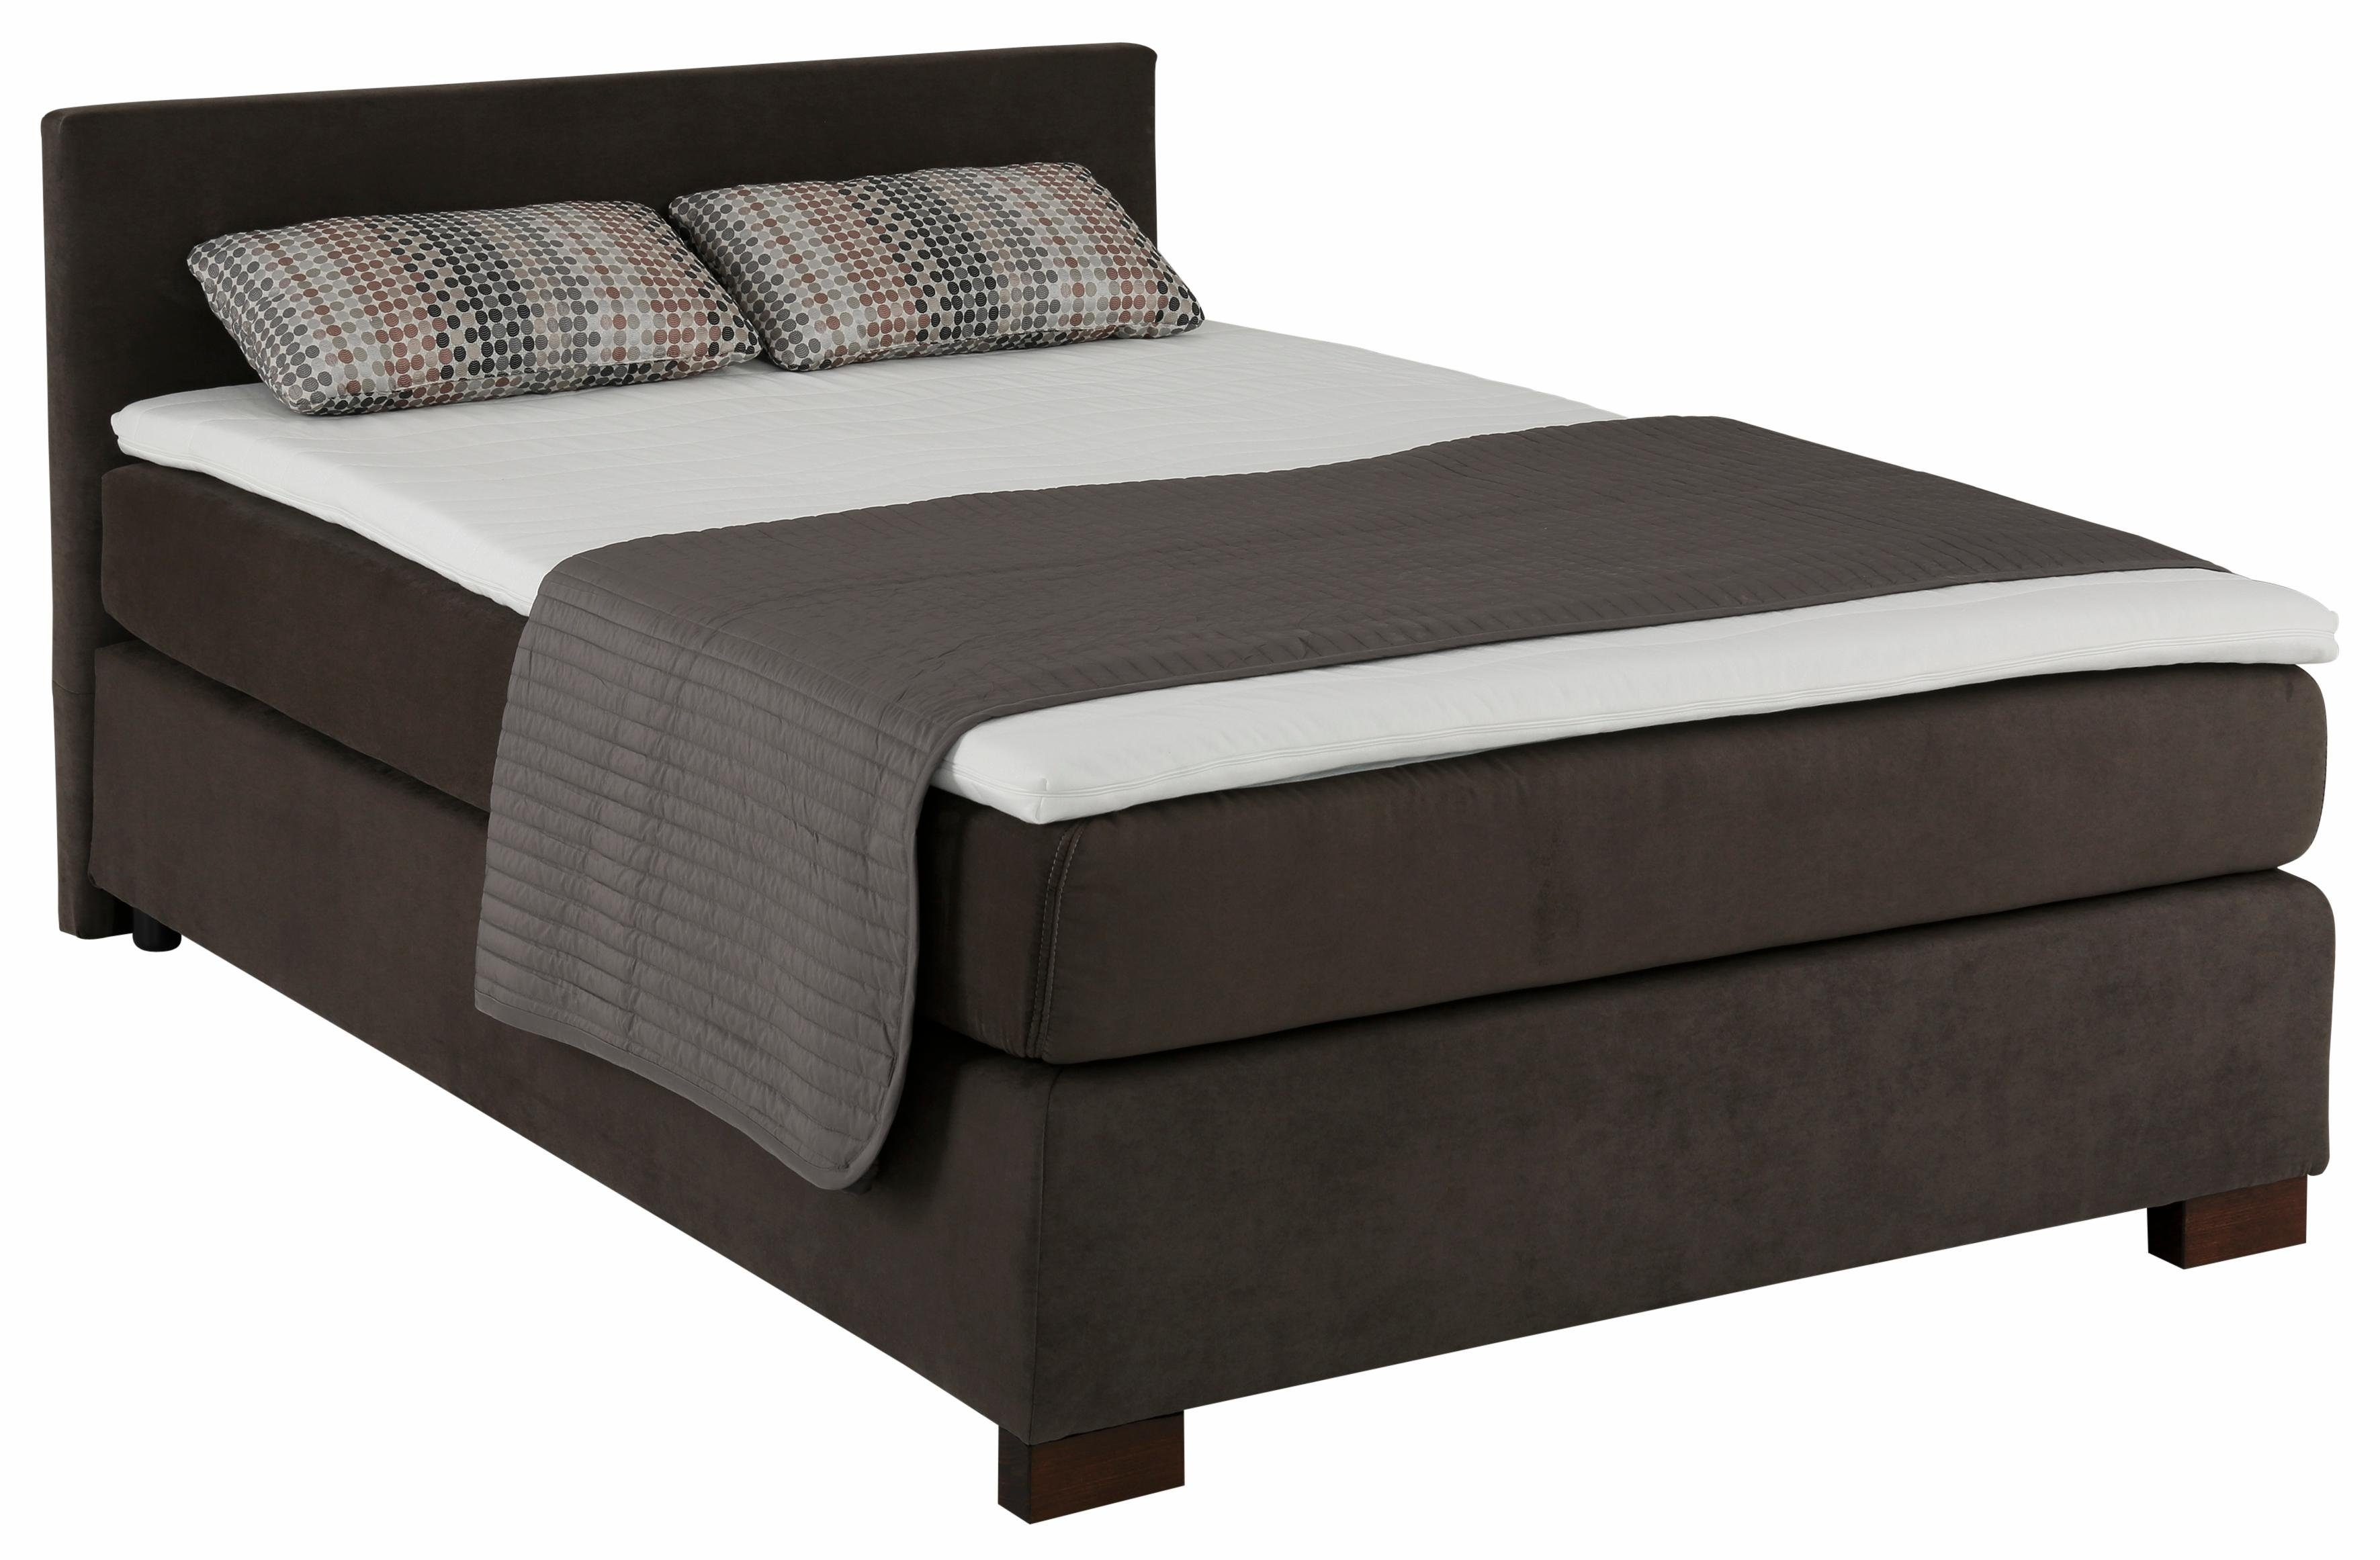 boxspring bestellen doe dat eenvoudig online otto. Black Bedroom Furniture Sets. Home Design Ideas